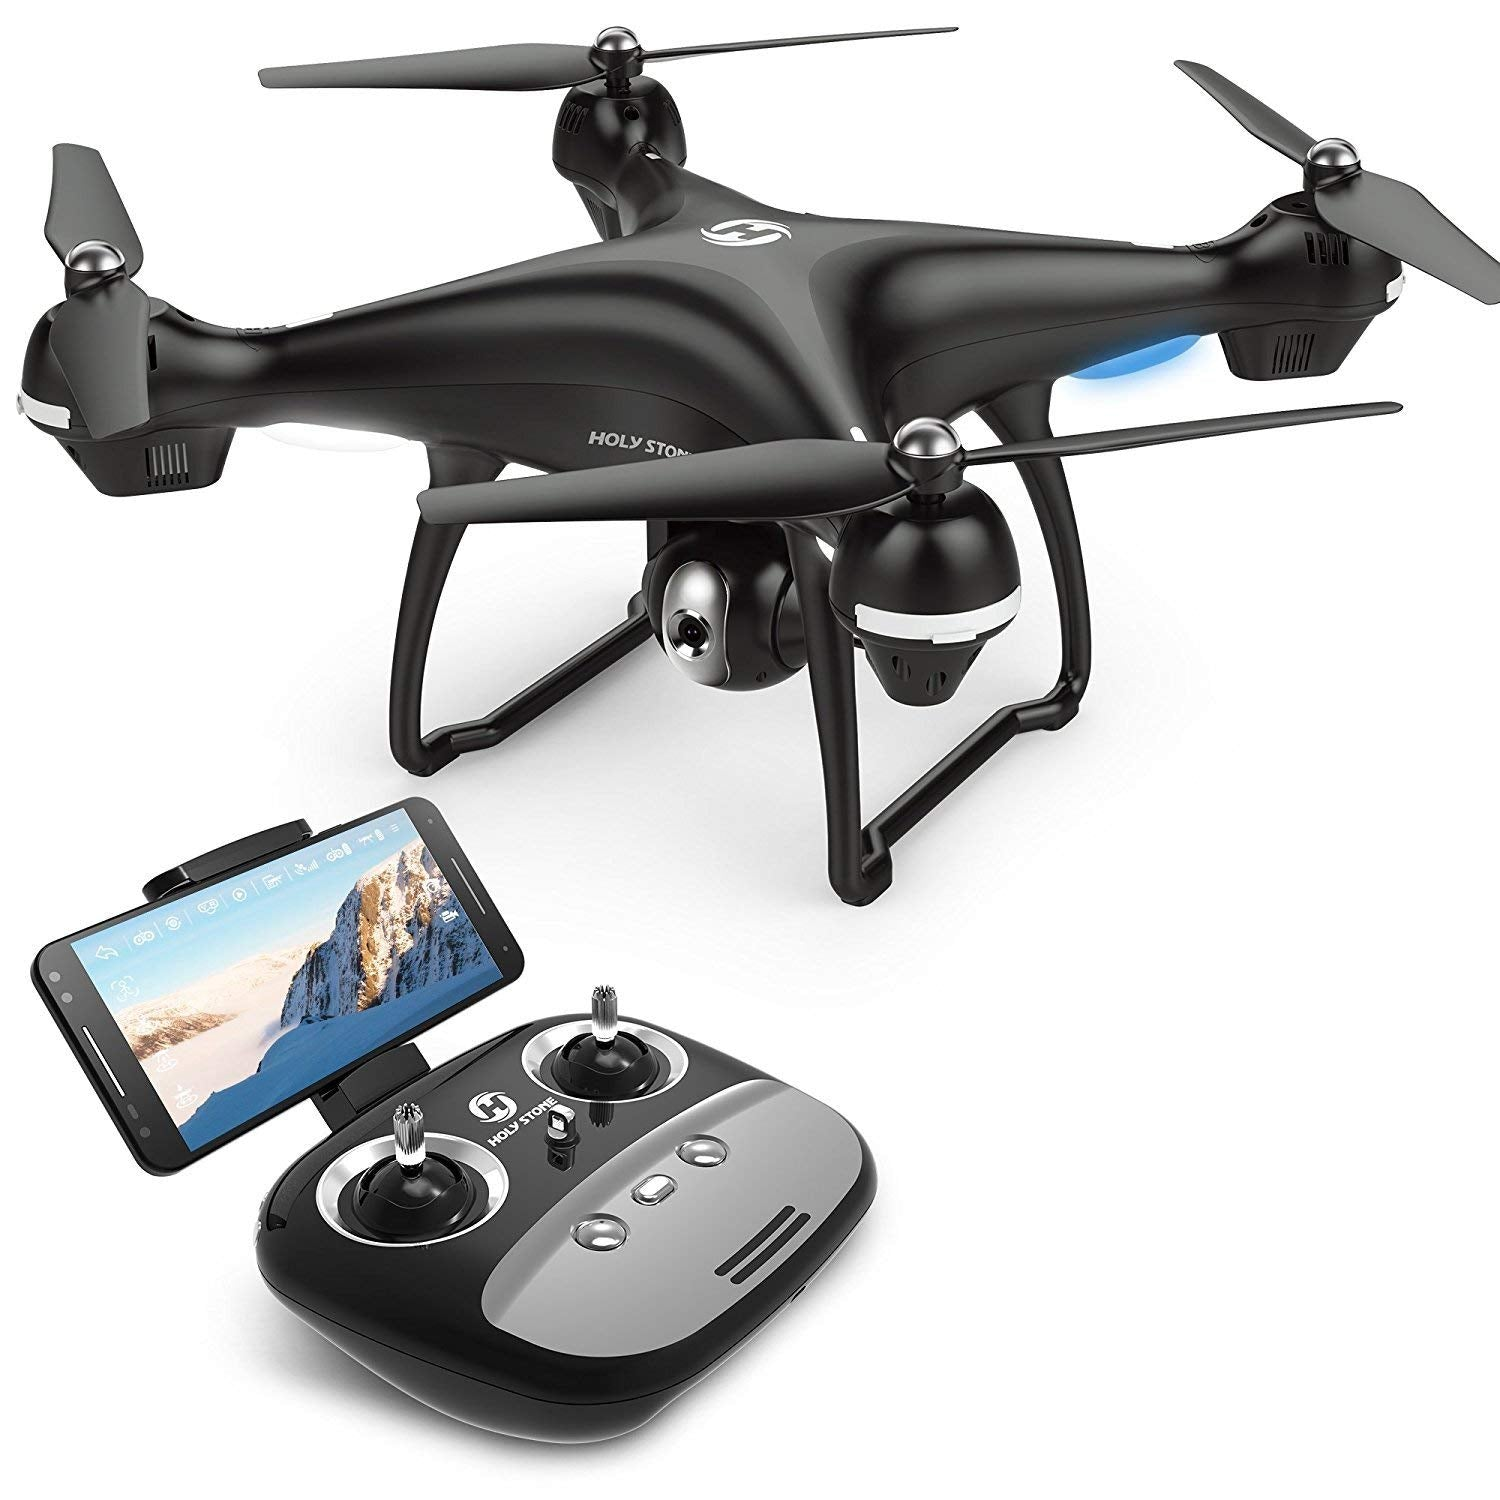 Holy Stone HS100 Navigator Drone - oddgifts.com